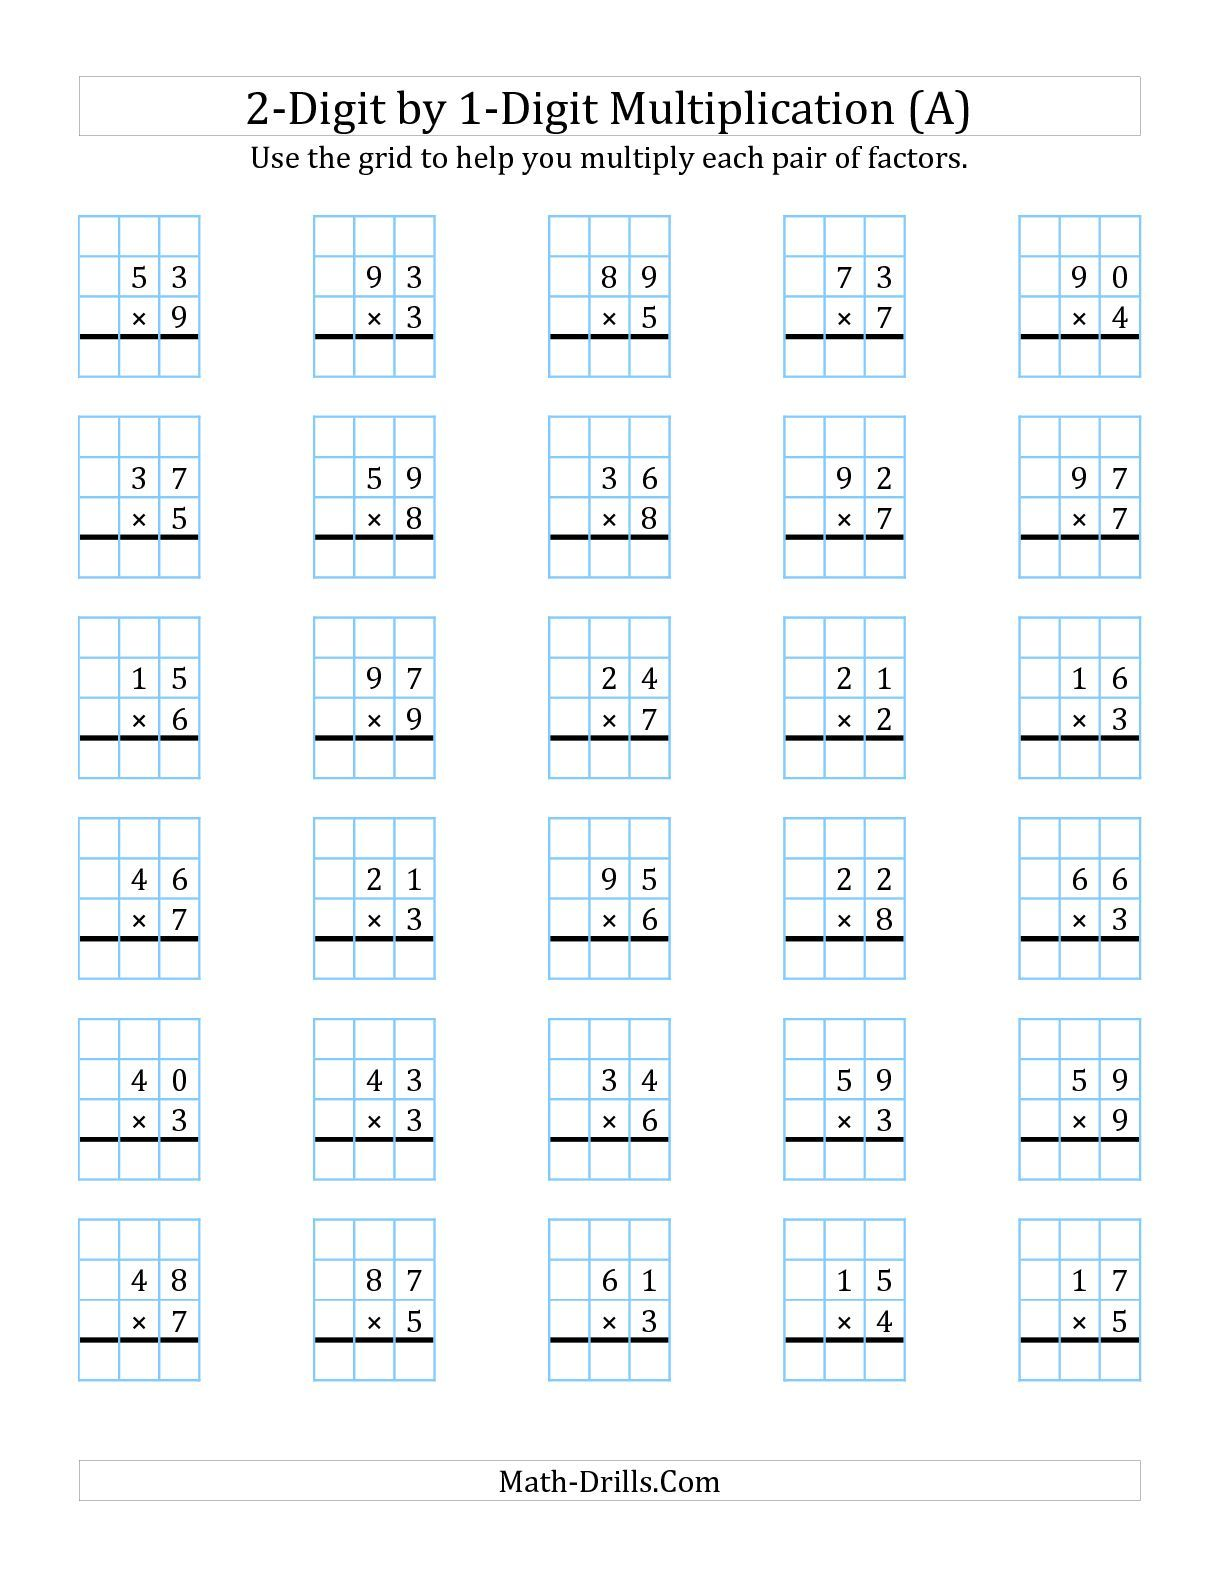 Worksheets Grid Multiplication Worksheets the 2 digit by 1 multiplication with grid support a math worksheet from long page at dri